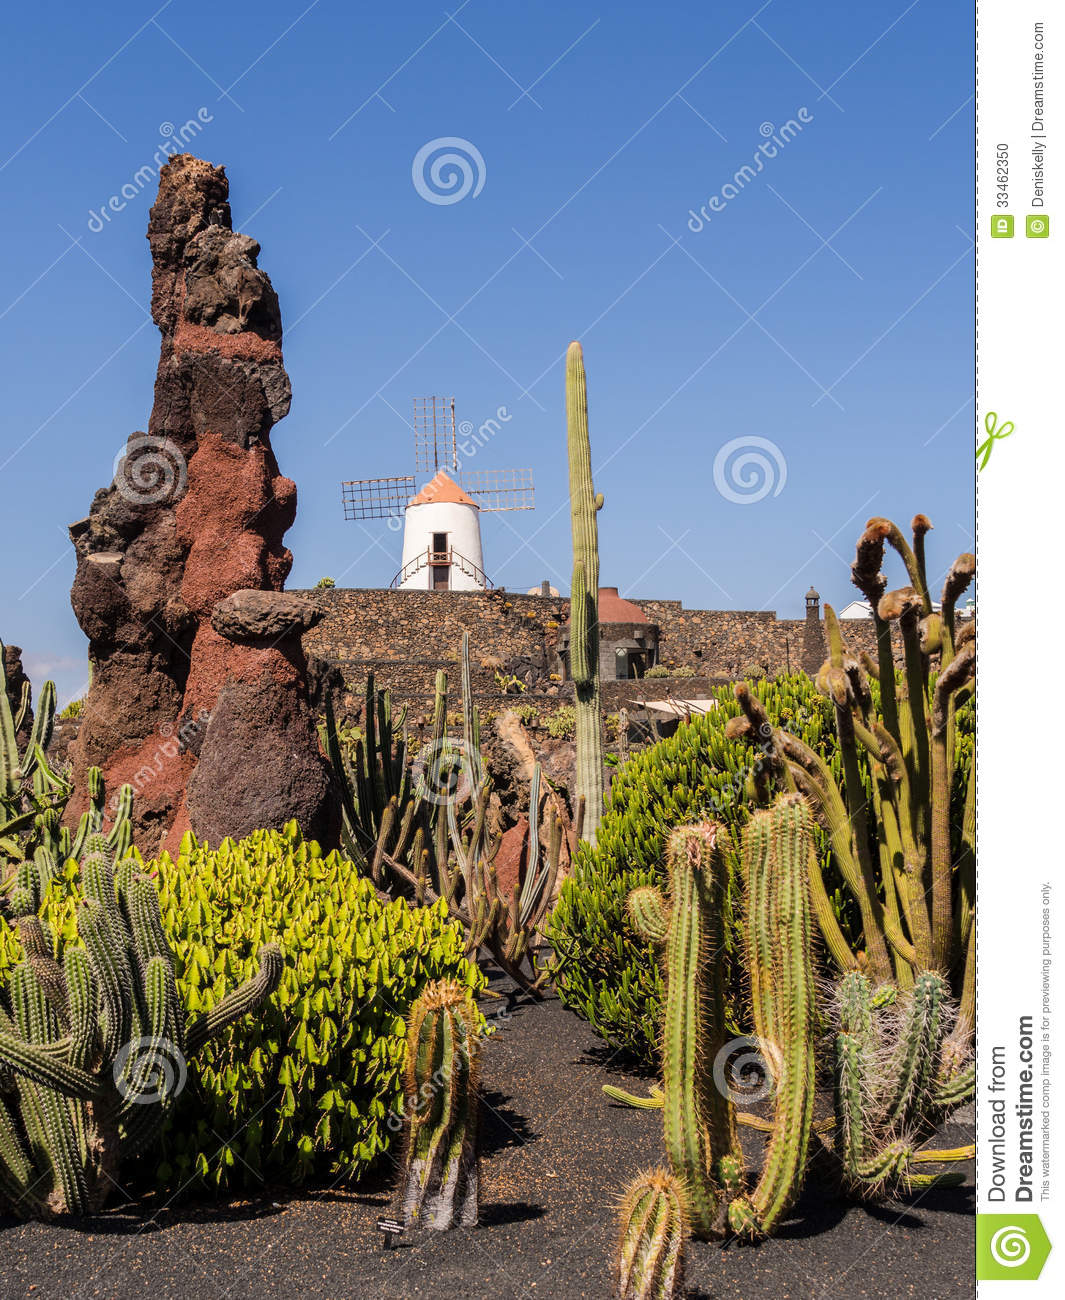 Jardin de cactus lanzarote les canaries photo stock for Jardin de cactus lanzarote